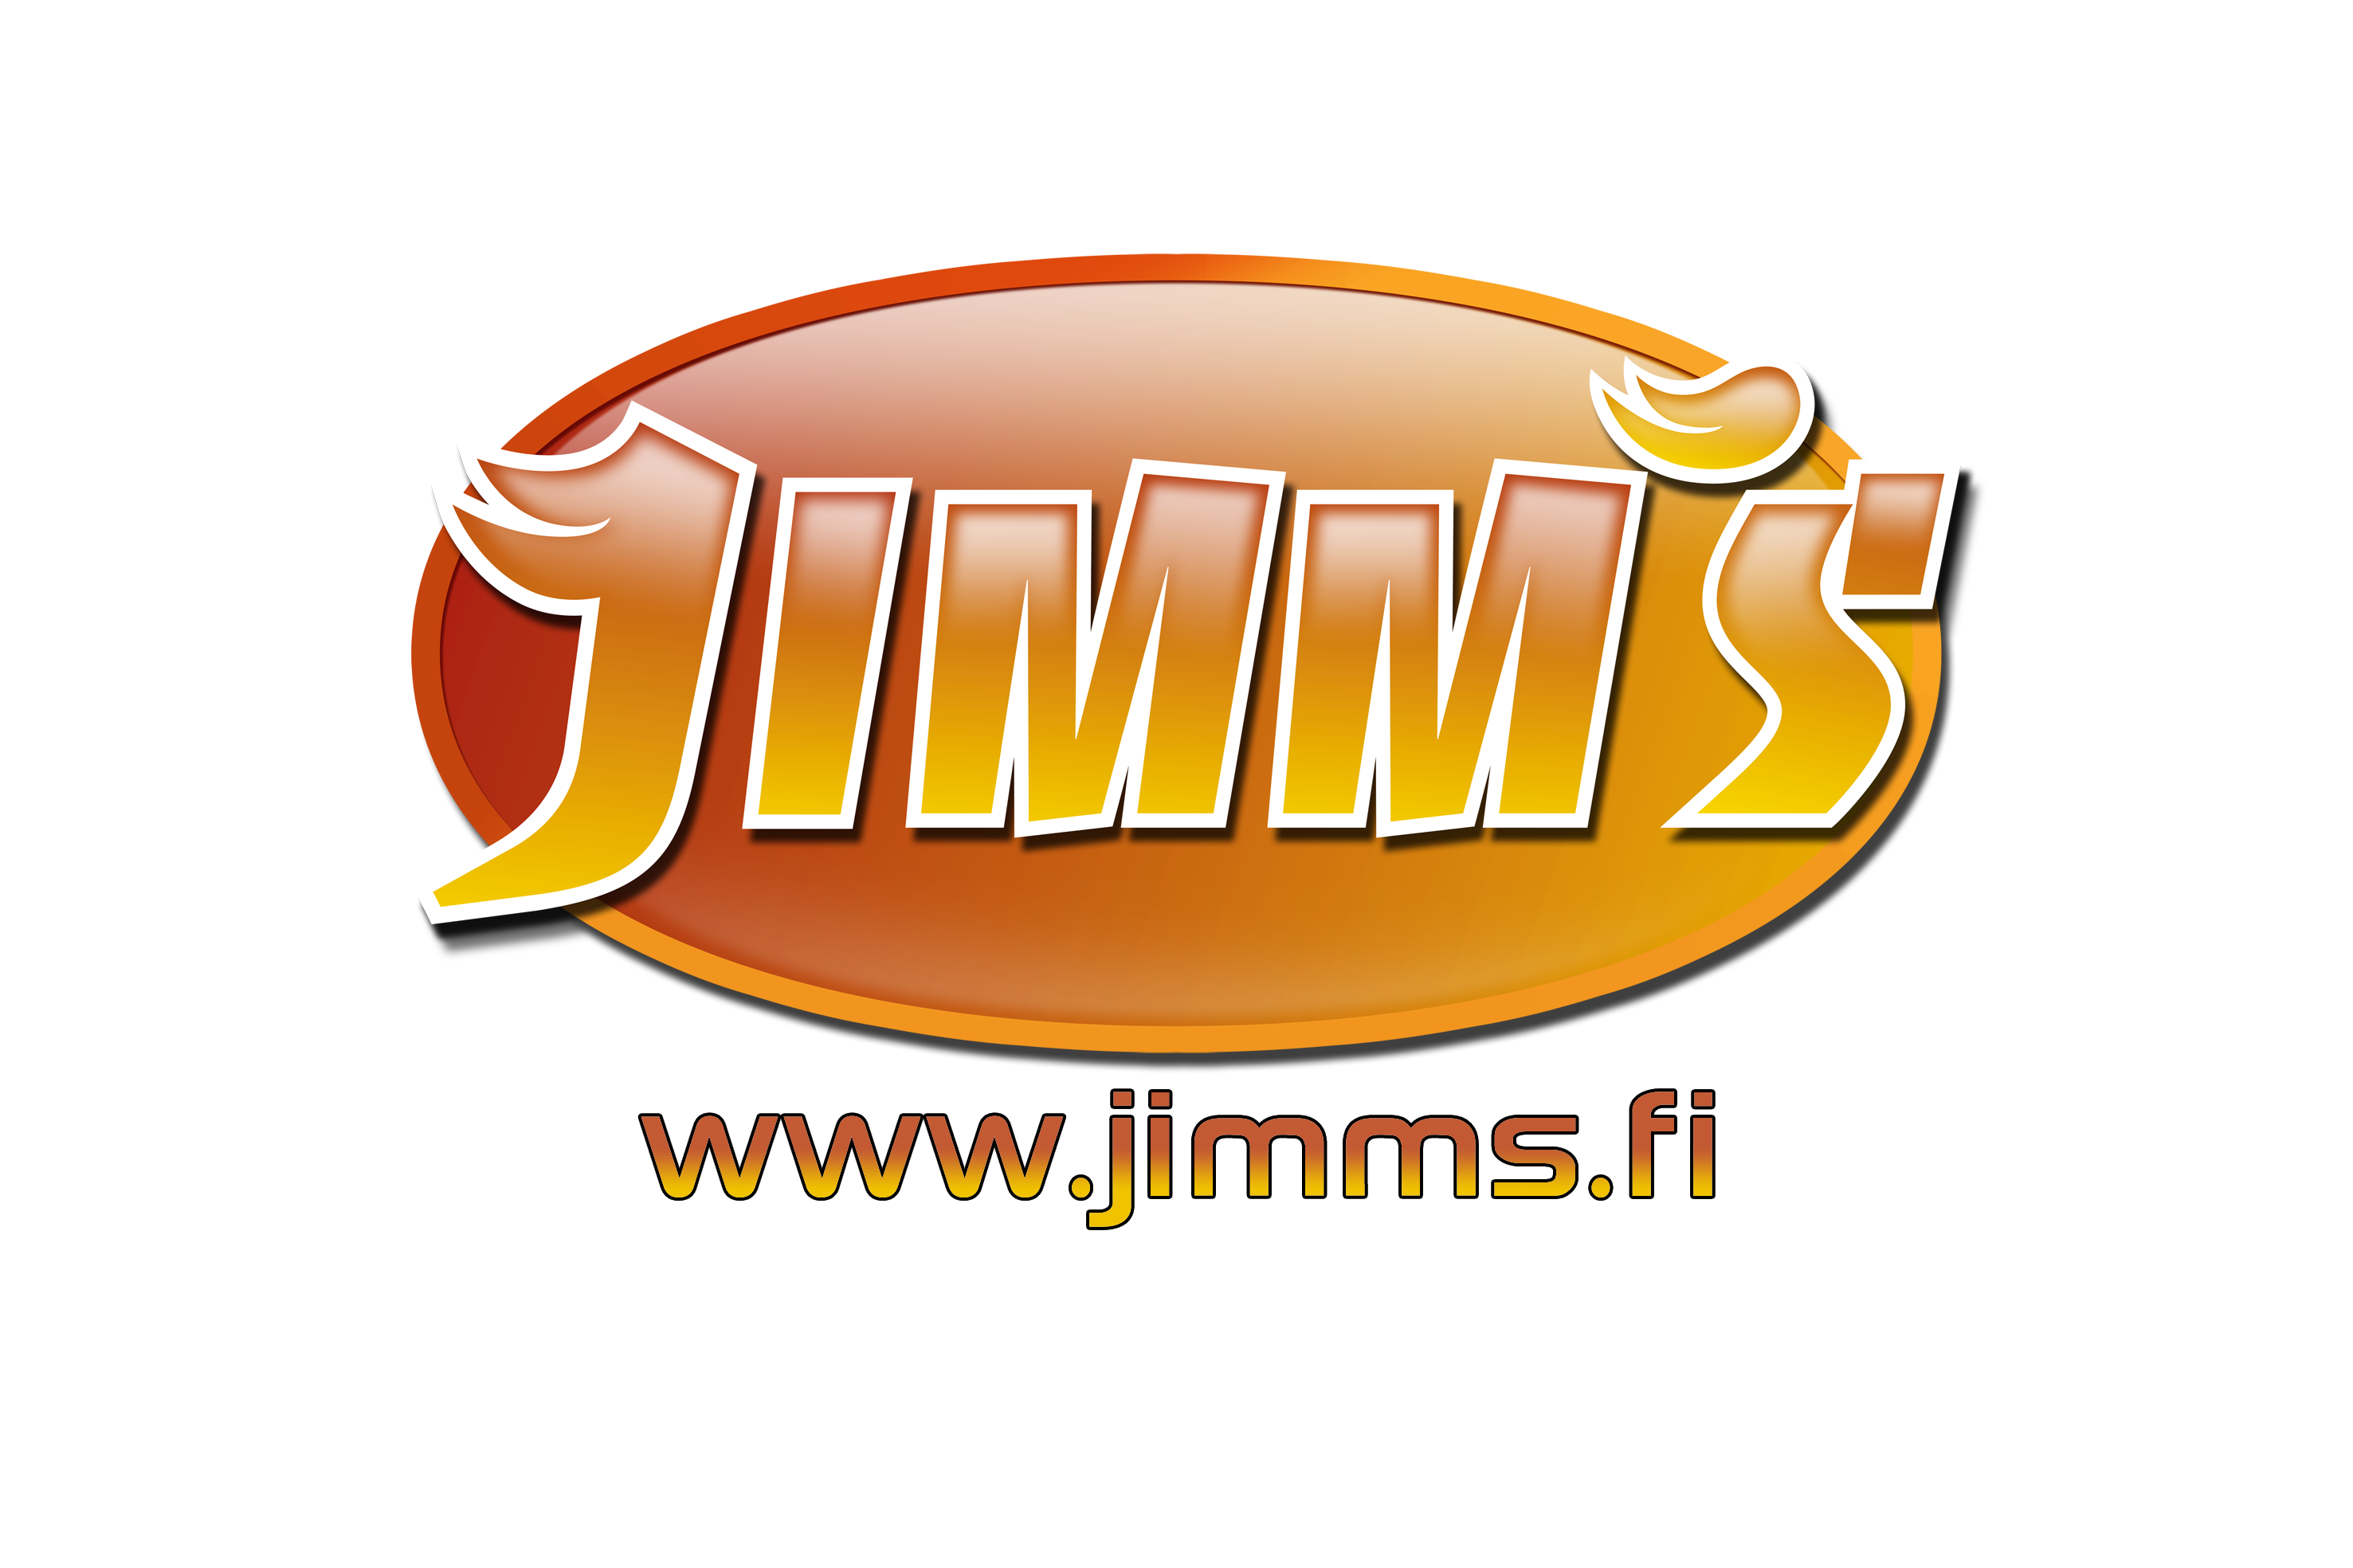 Jimm's